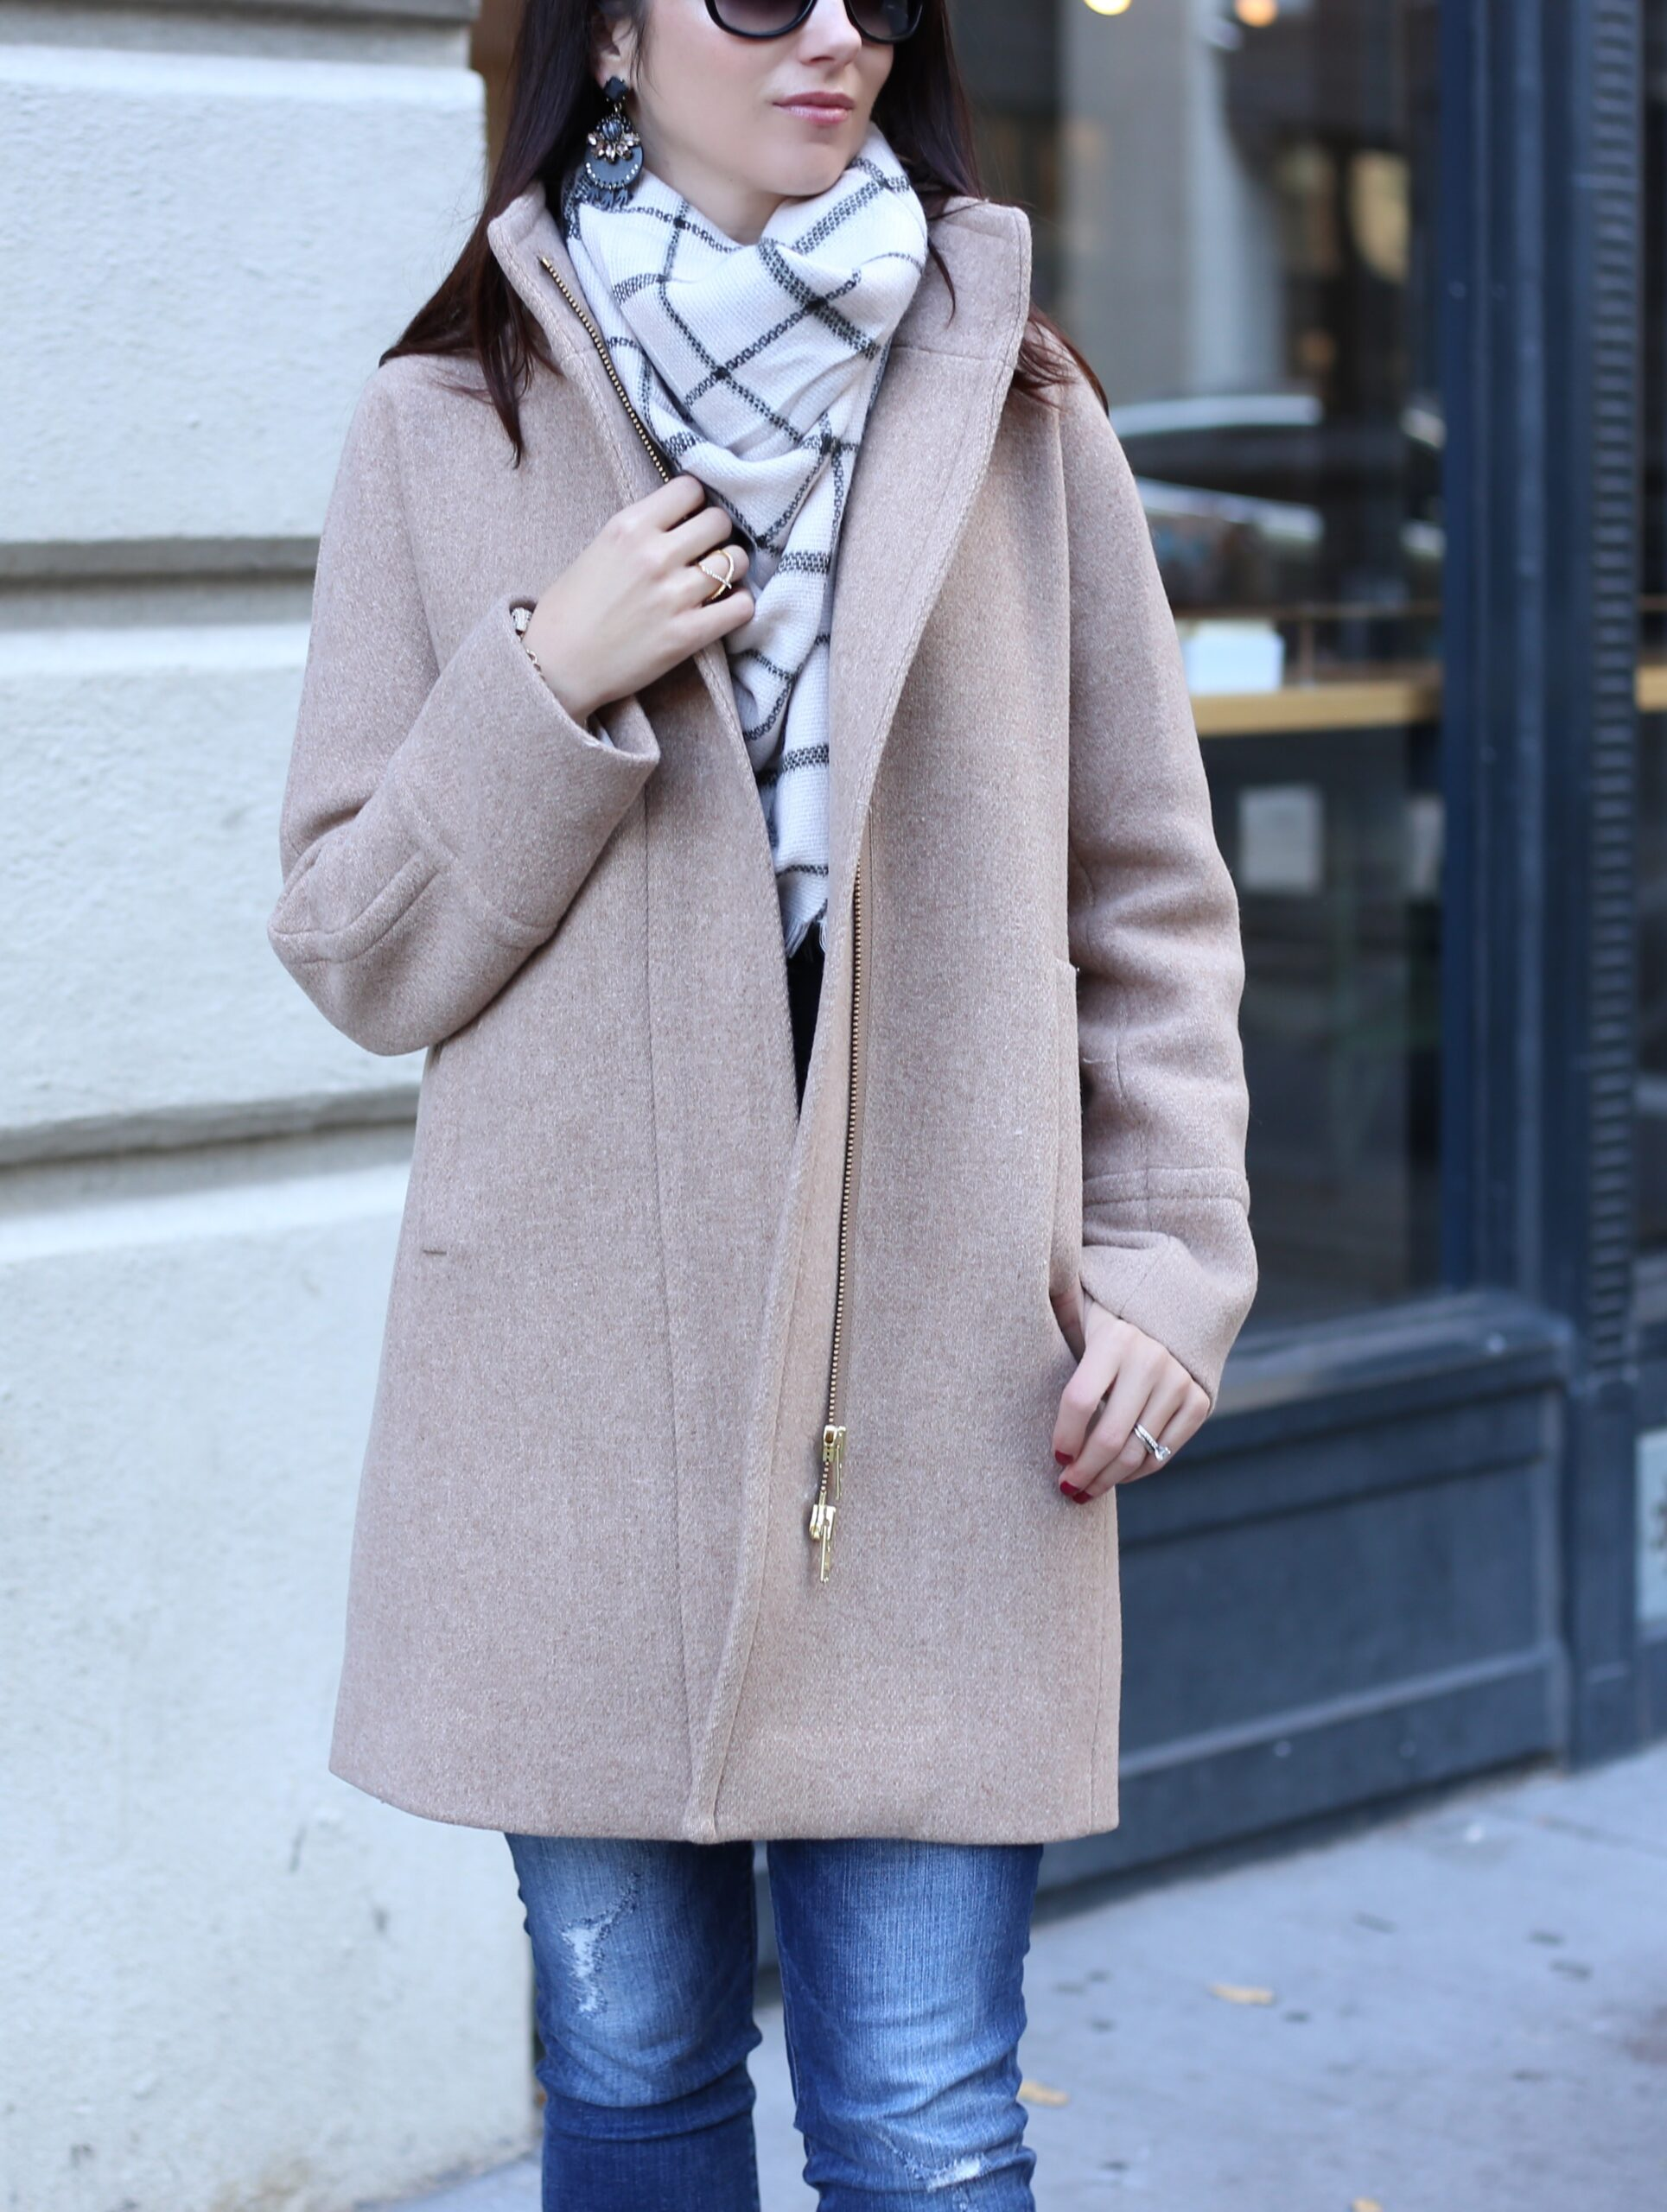 lifestyle blogger Anna Monteiro in J. Crew cocoon coat and BP. blanket scarf